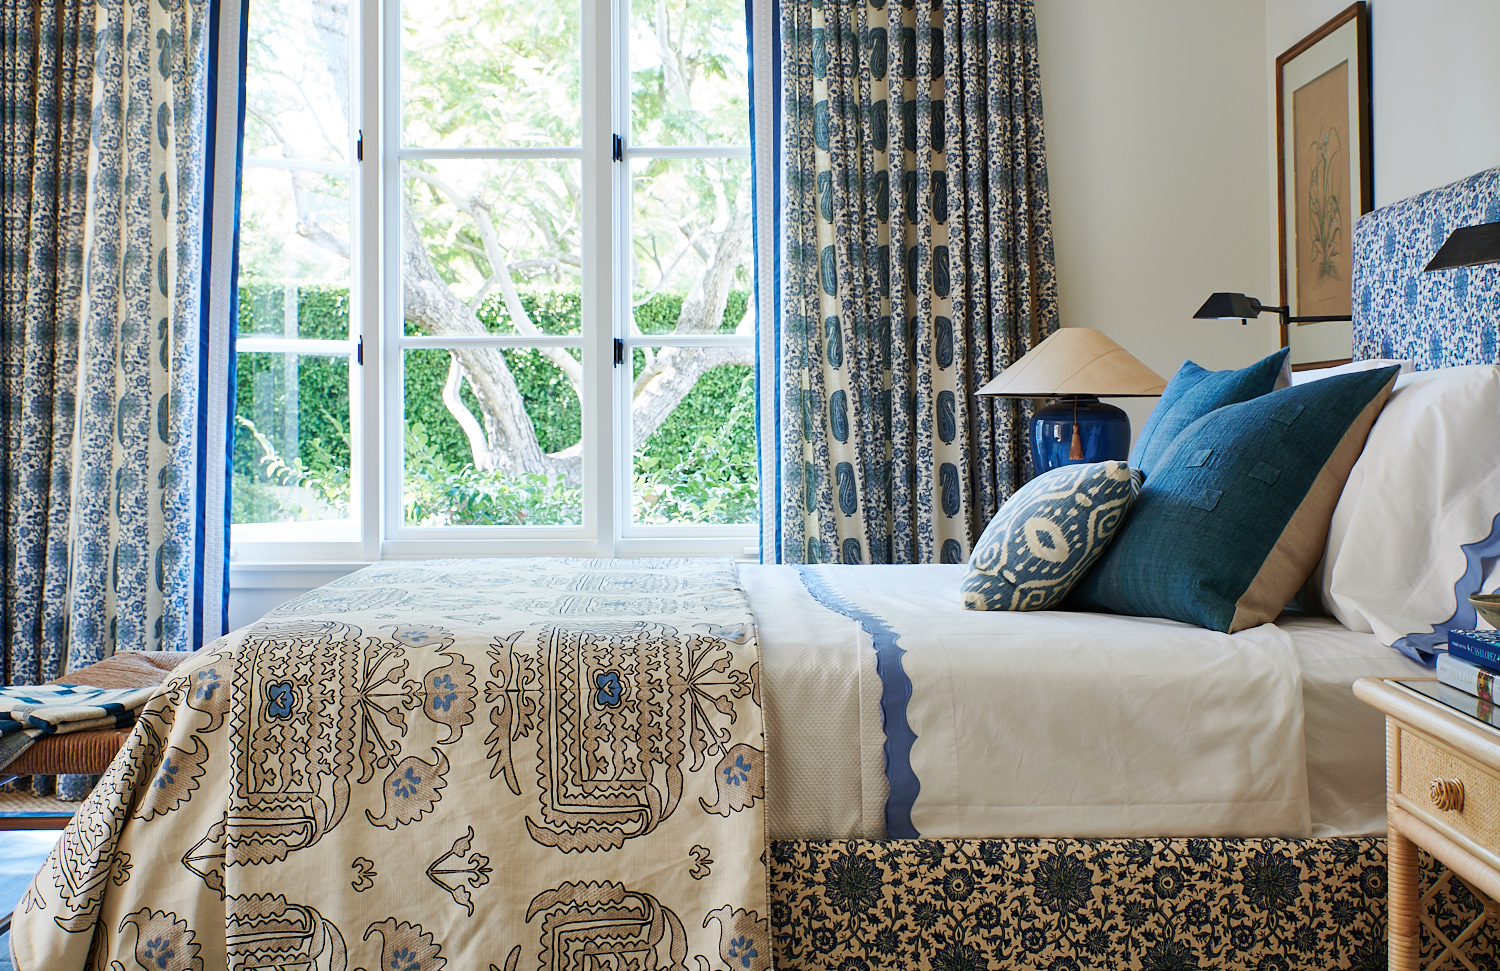 Upholstered bed, custom throw pillows, and window drapery